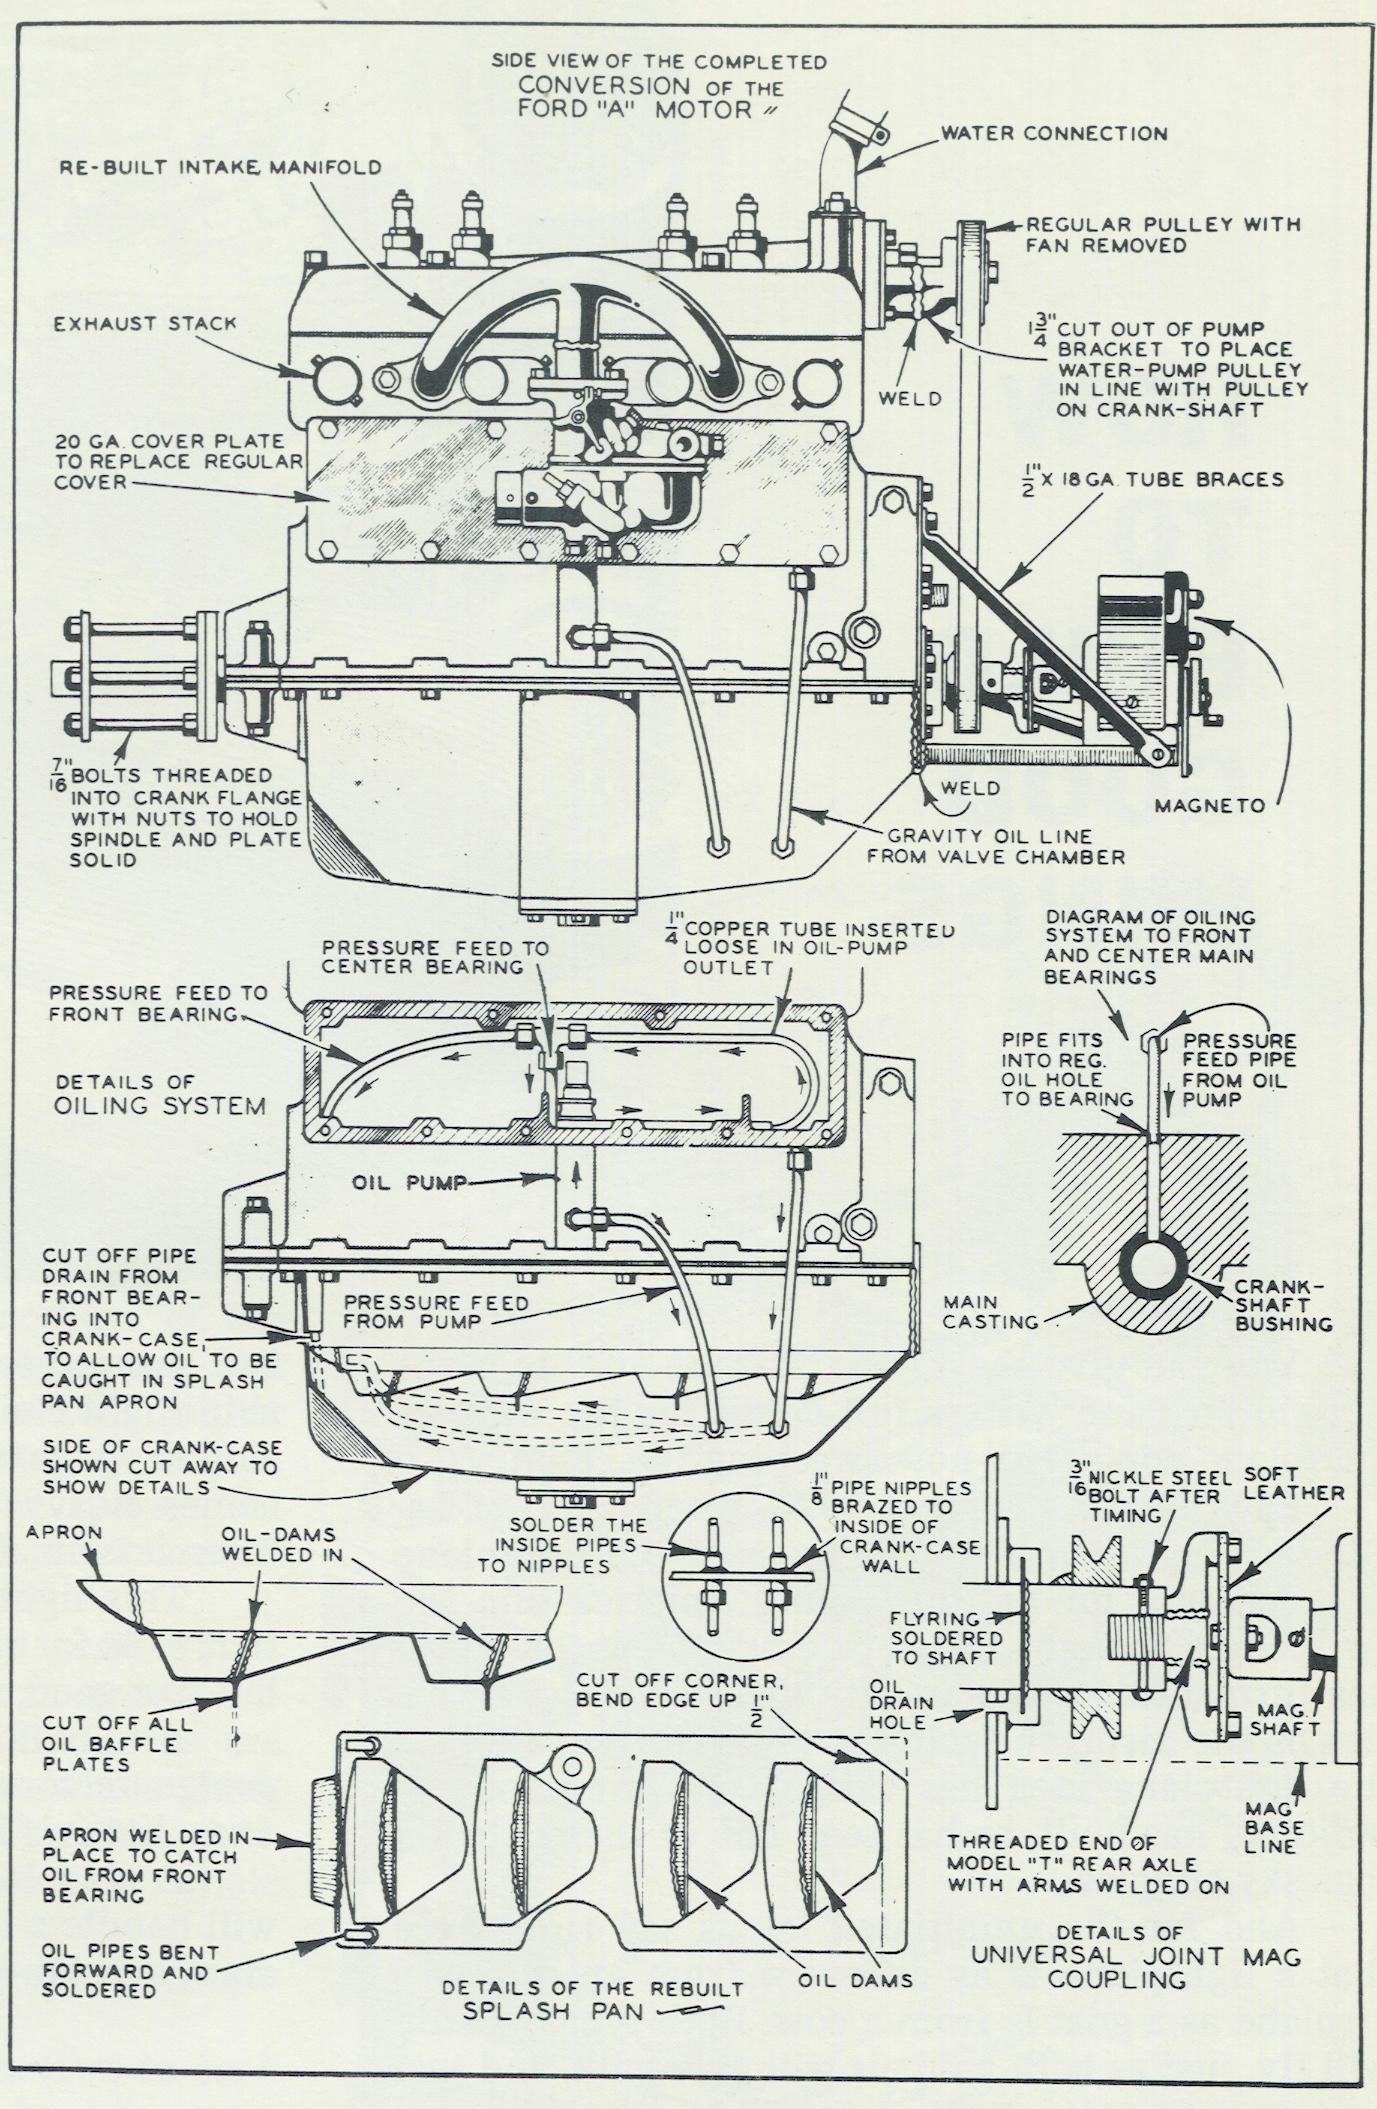 pietenpol air camper reconstruction page 3 bernard pietenpol s method for modification of the model a ford oiling system